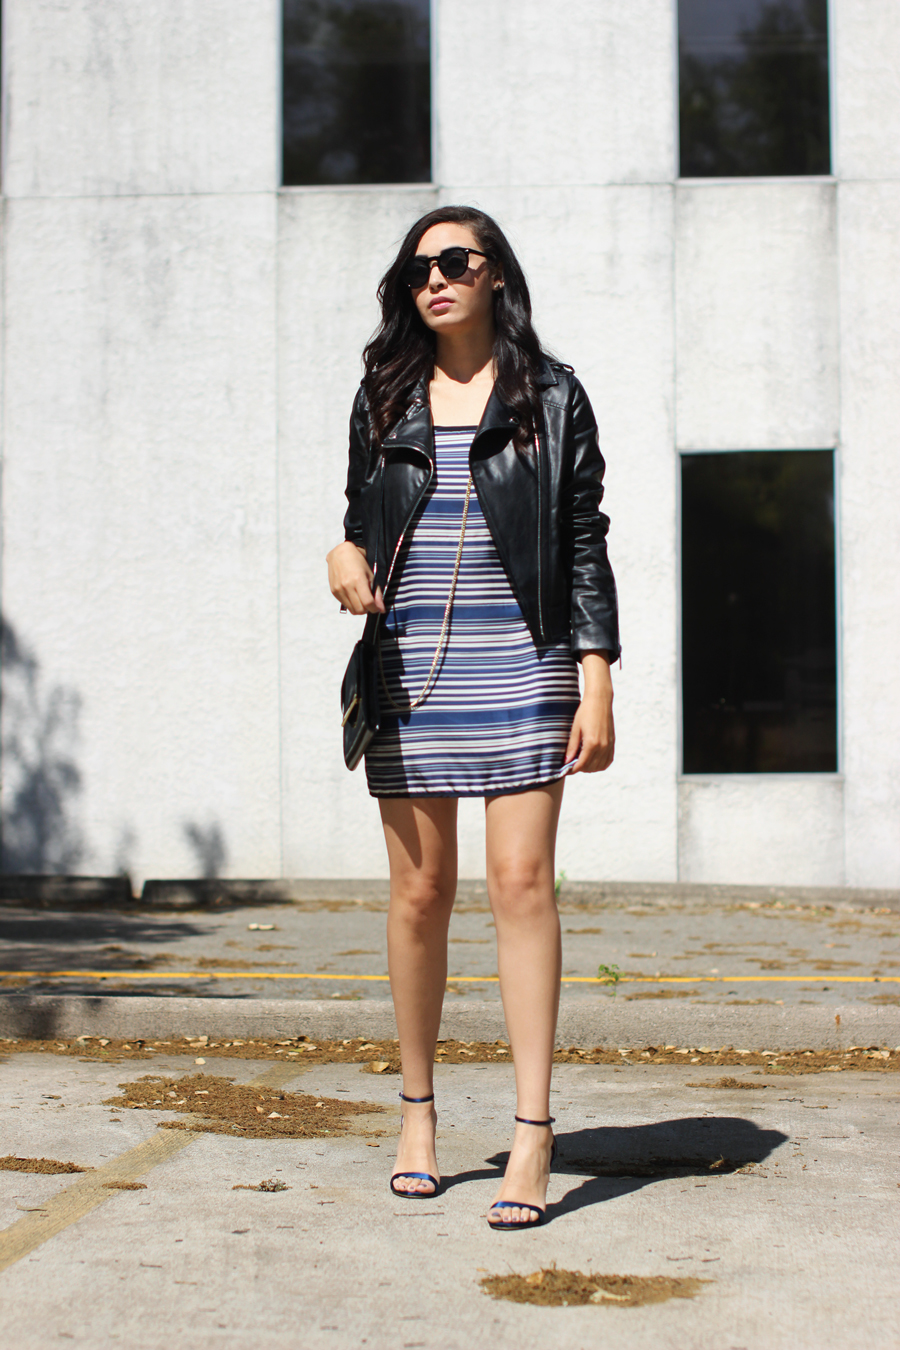 FTT-STRIPED-DRESS-LEATHER-JACKET-BCBG-AUSTIN-BLOGGER-5